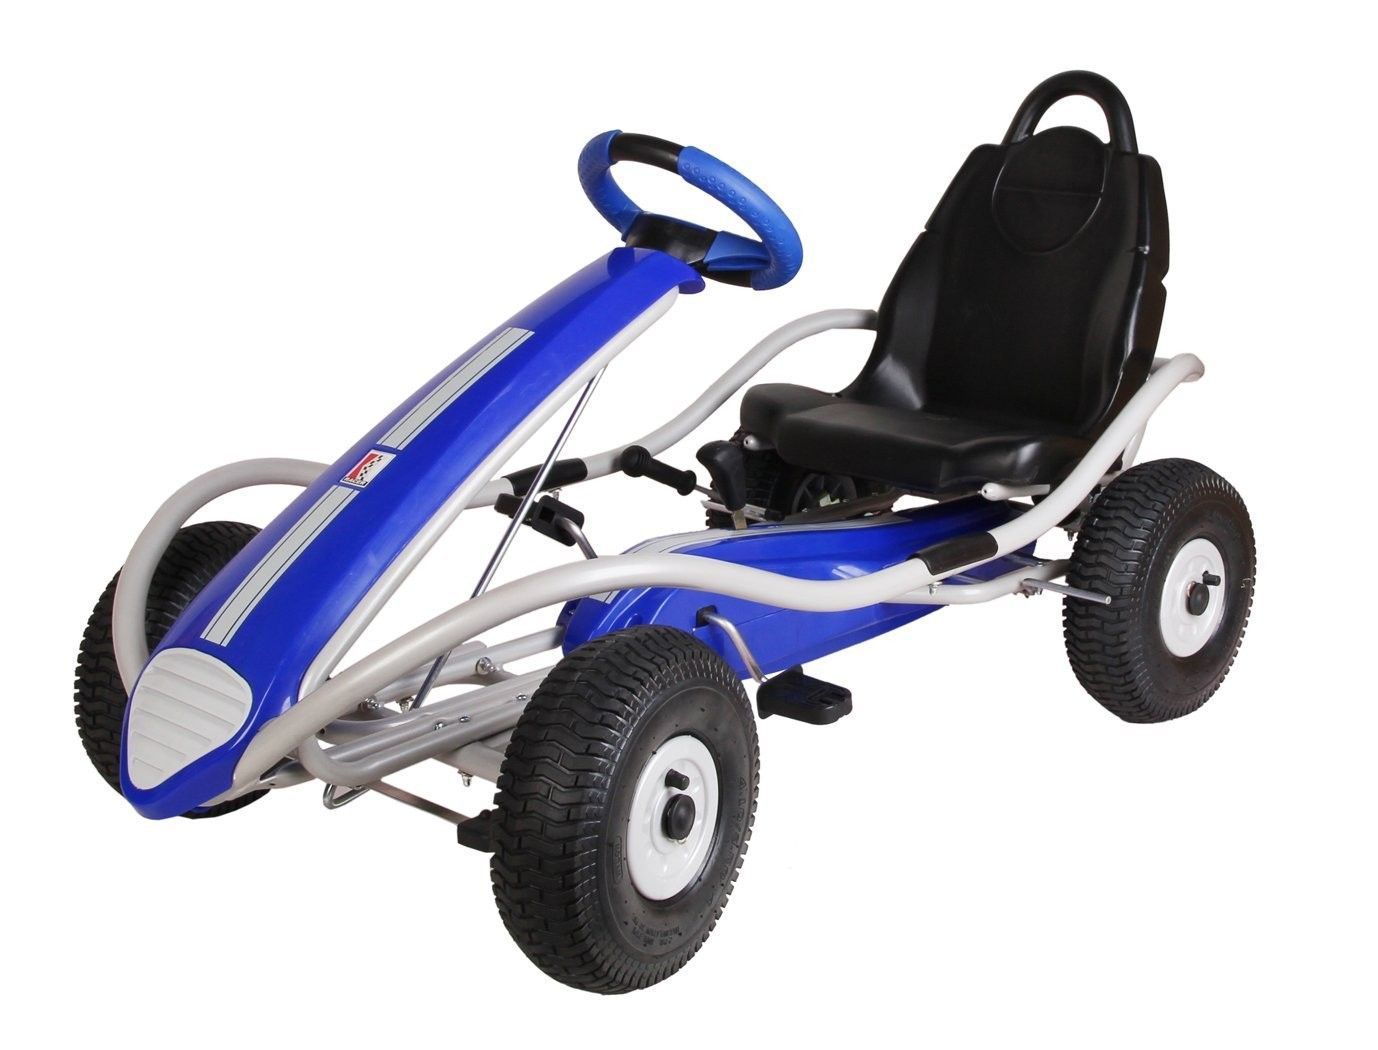 Kettler Kids Comfort Kettler Dakar Racer S Pedal Car Toys And Outdoor Playsets